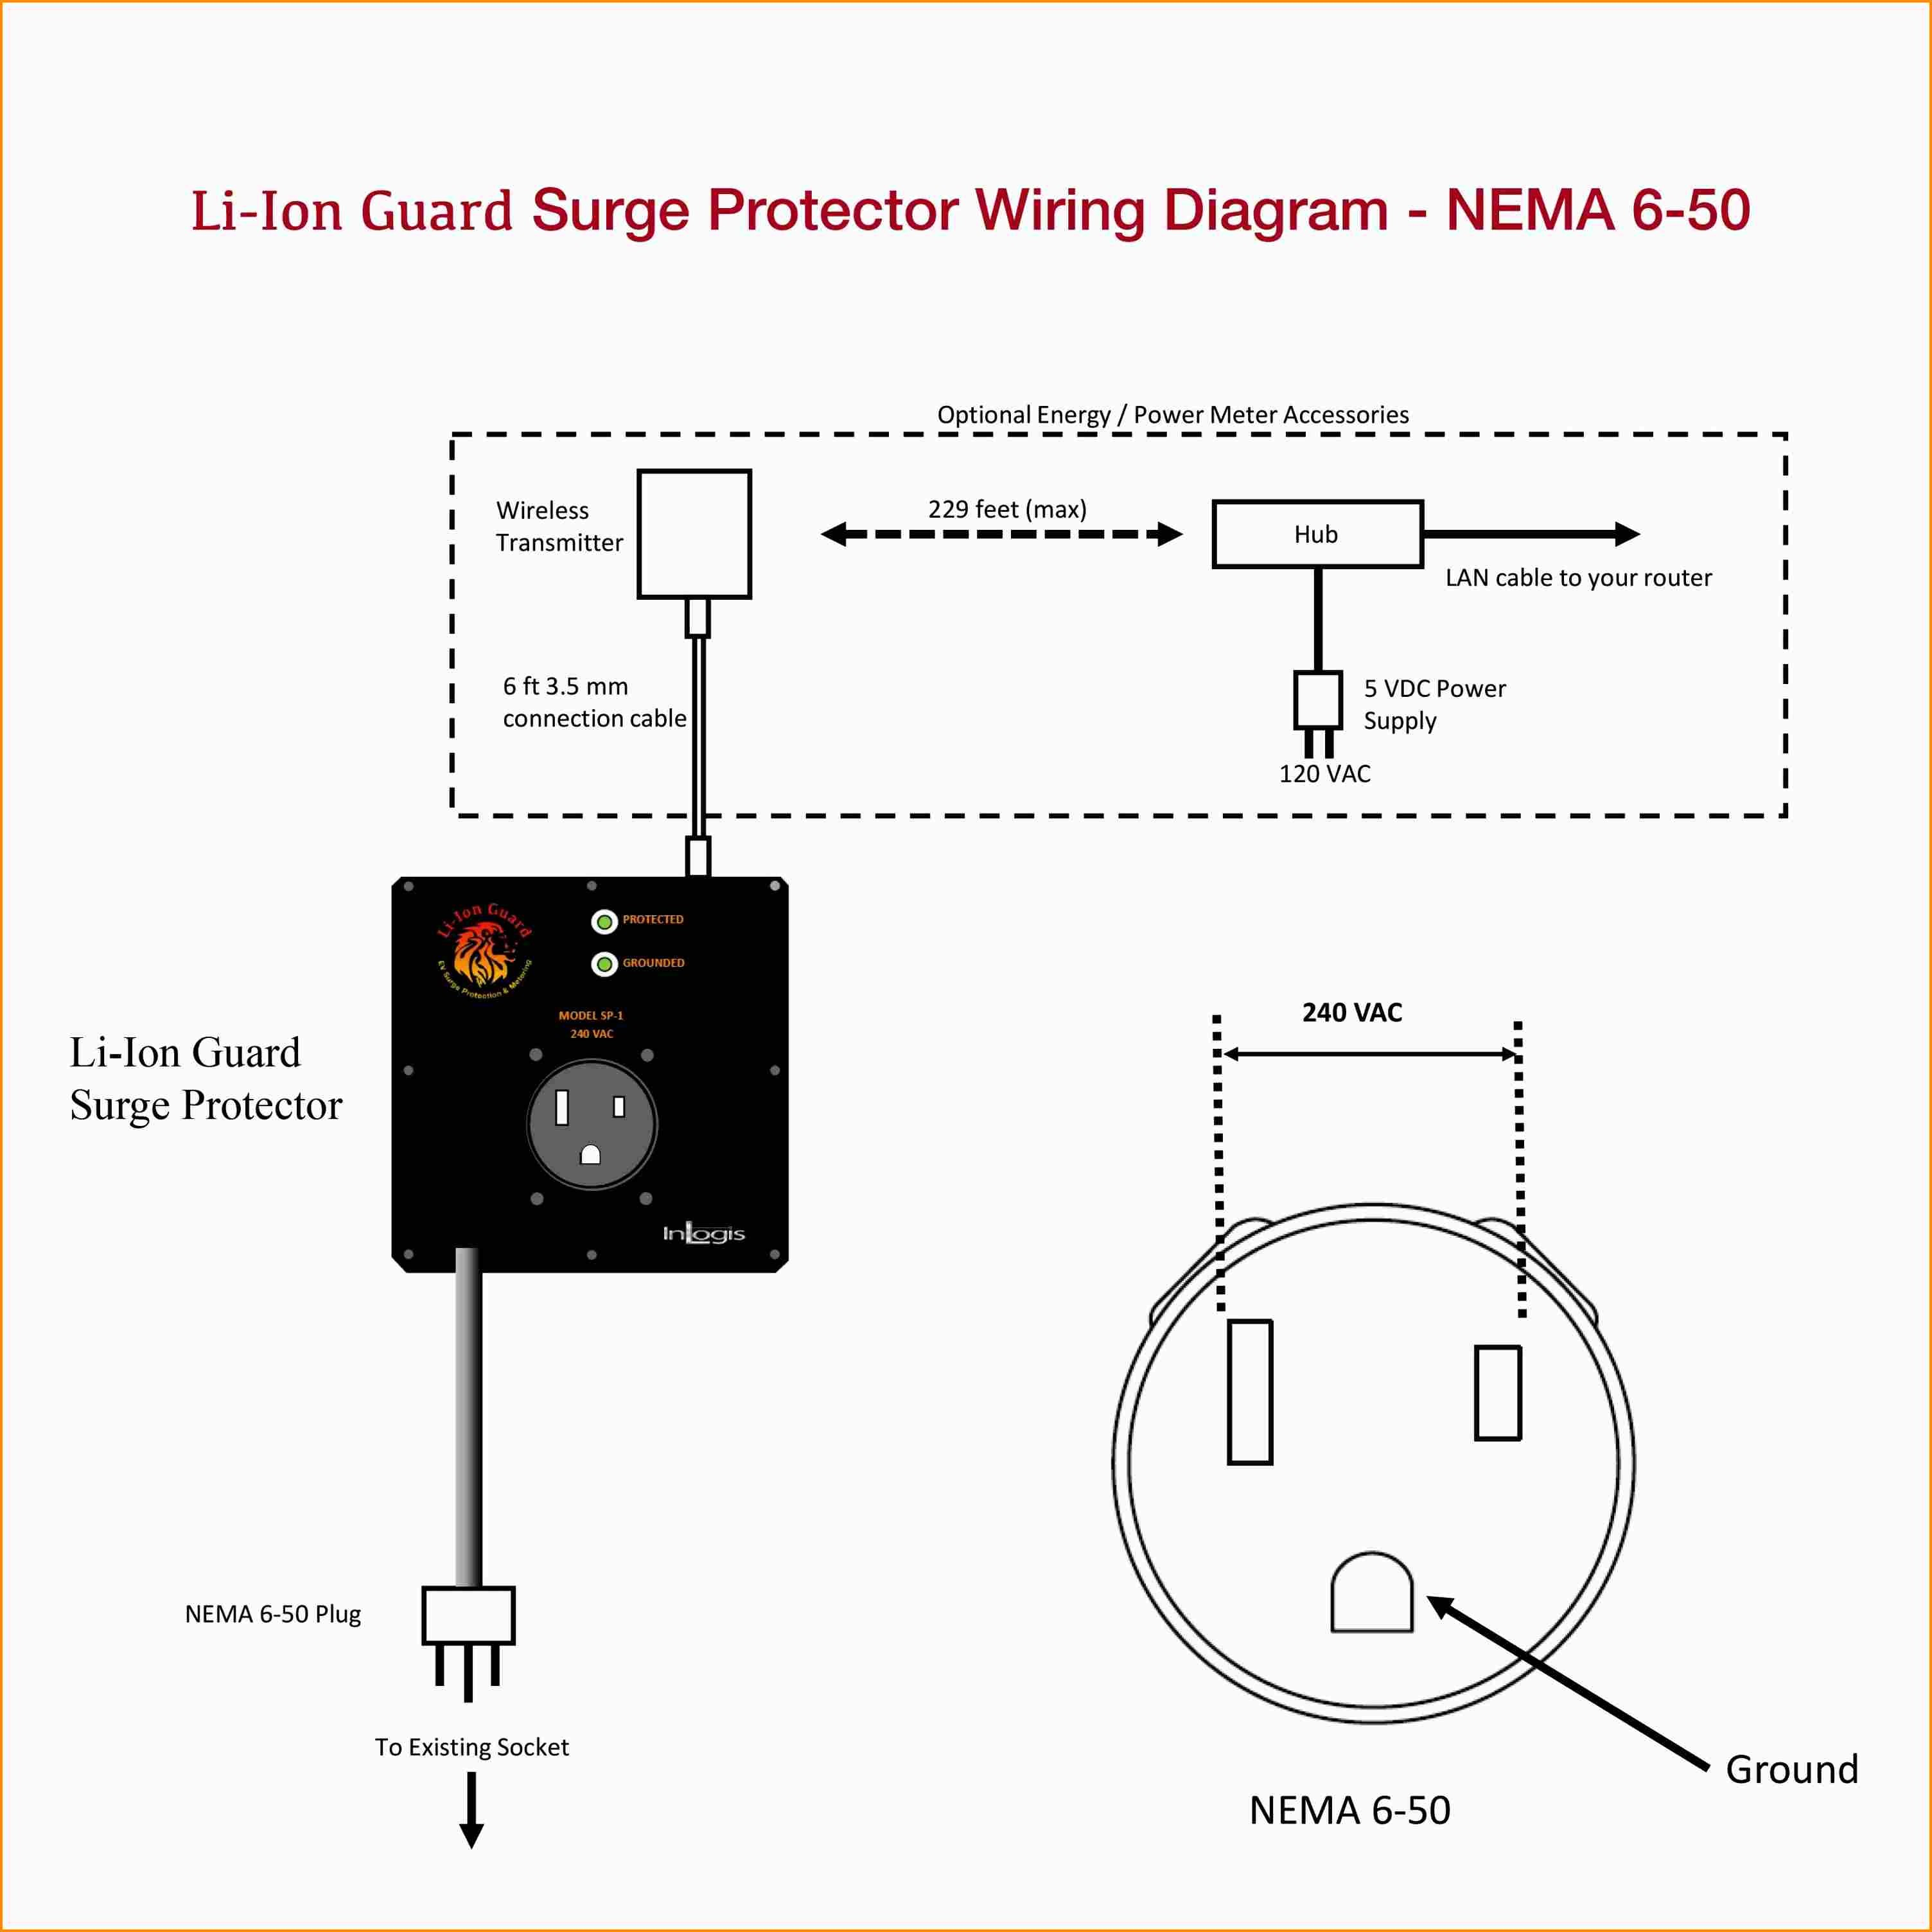 4 prong twist lock plug wiring diagram Download-4 Prong Twist Lock Plug Wiring Diagram Luxury 7 30 Amp Twist Lock Plug Wiring Diagram 19-f